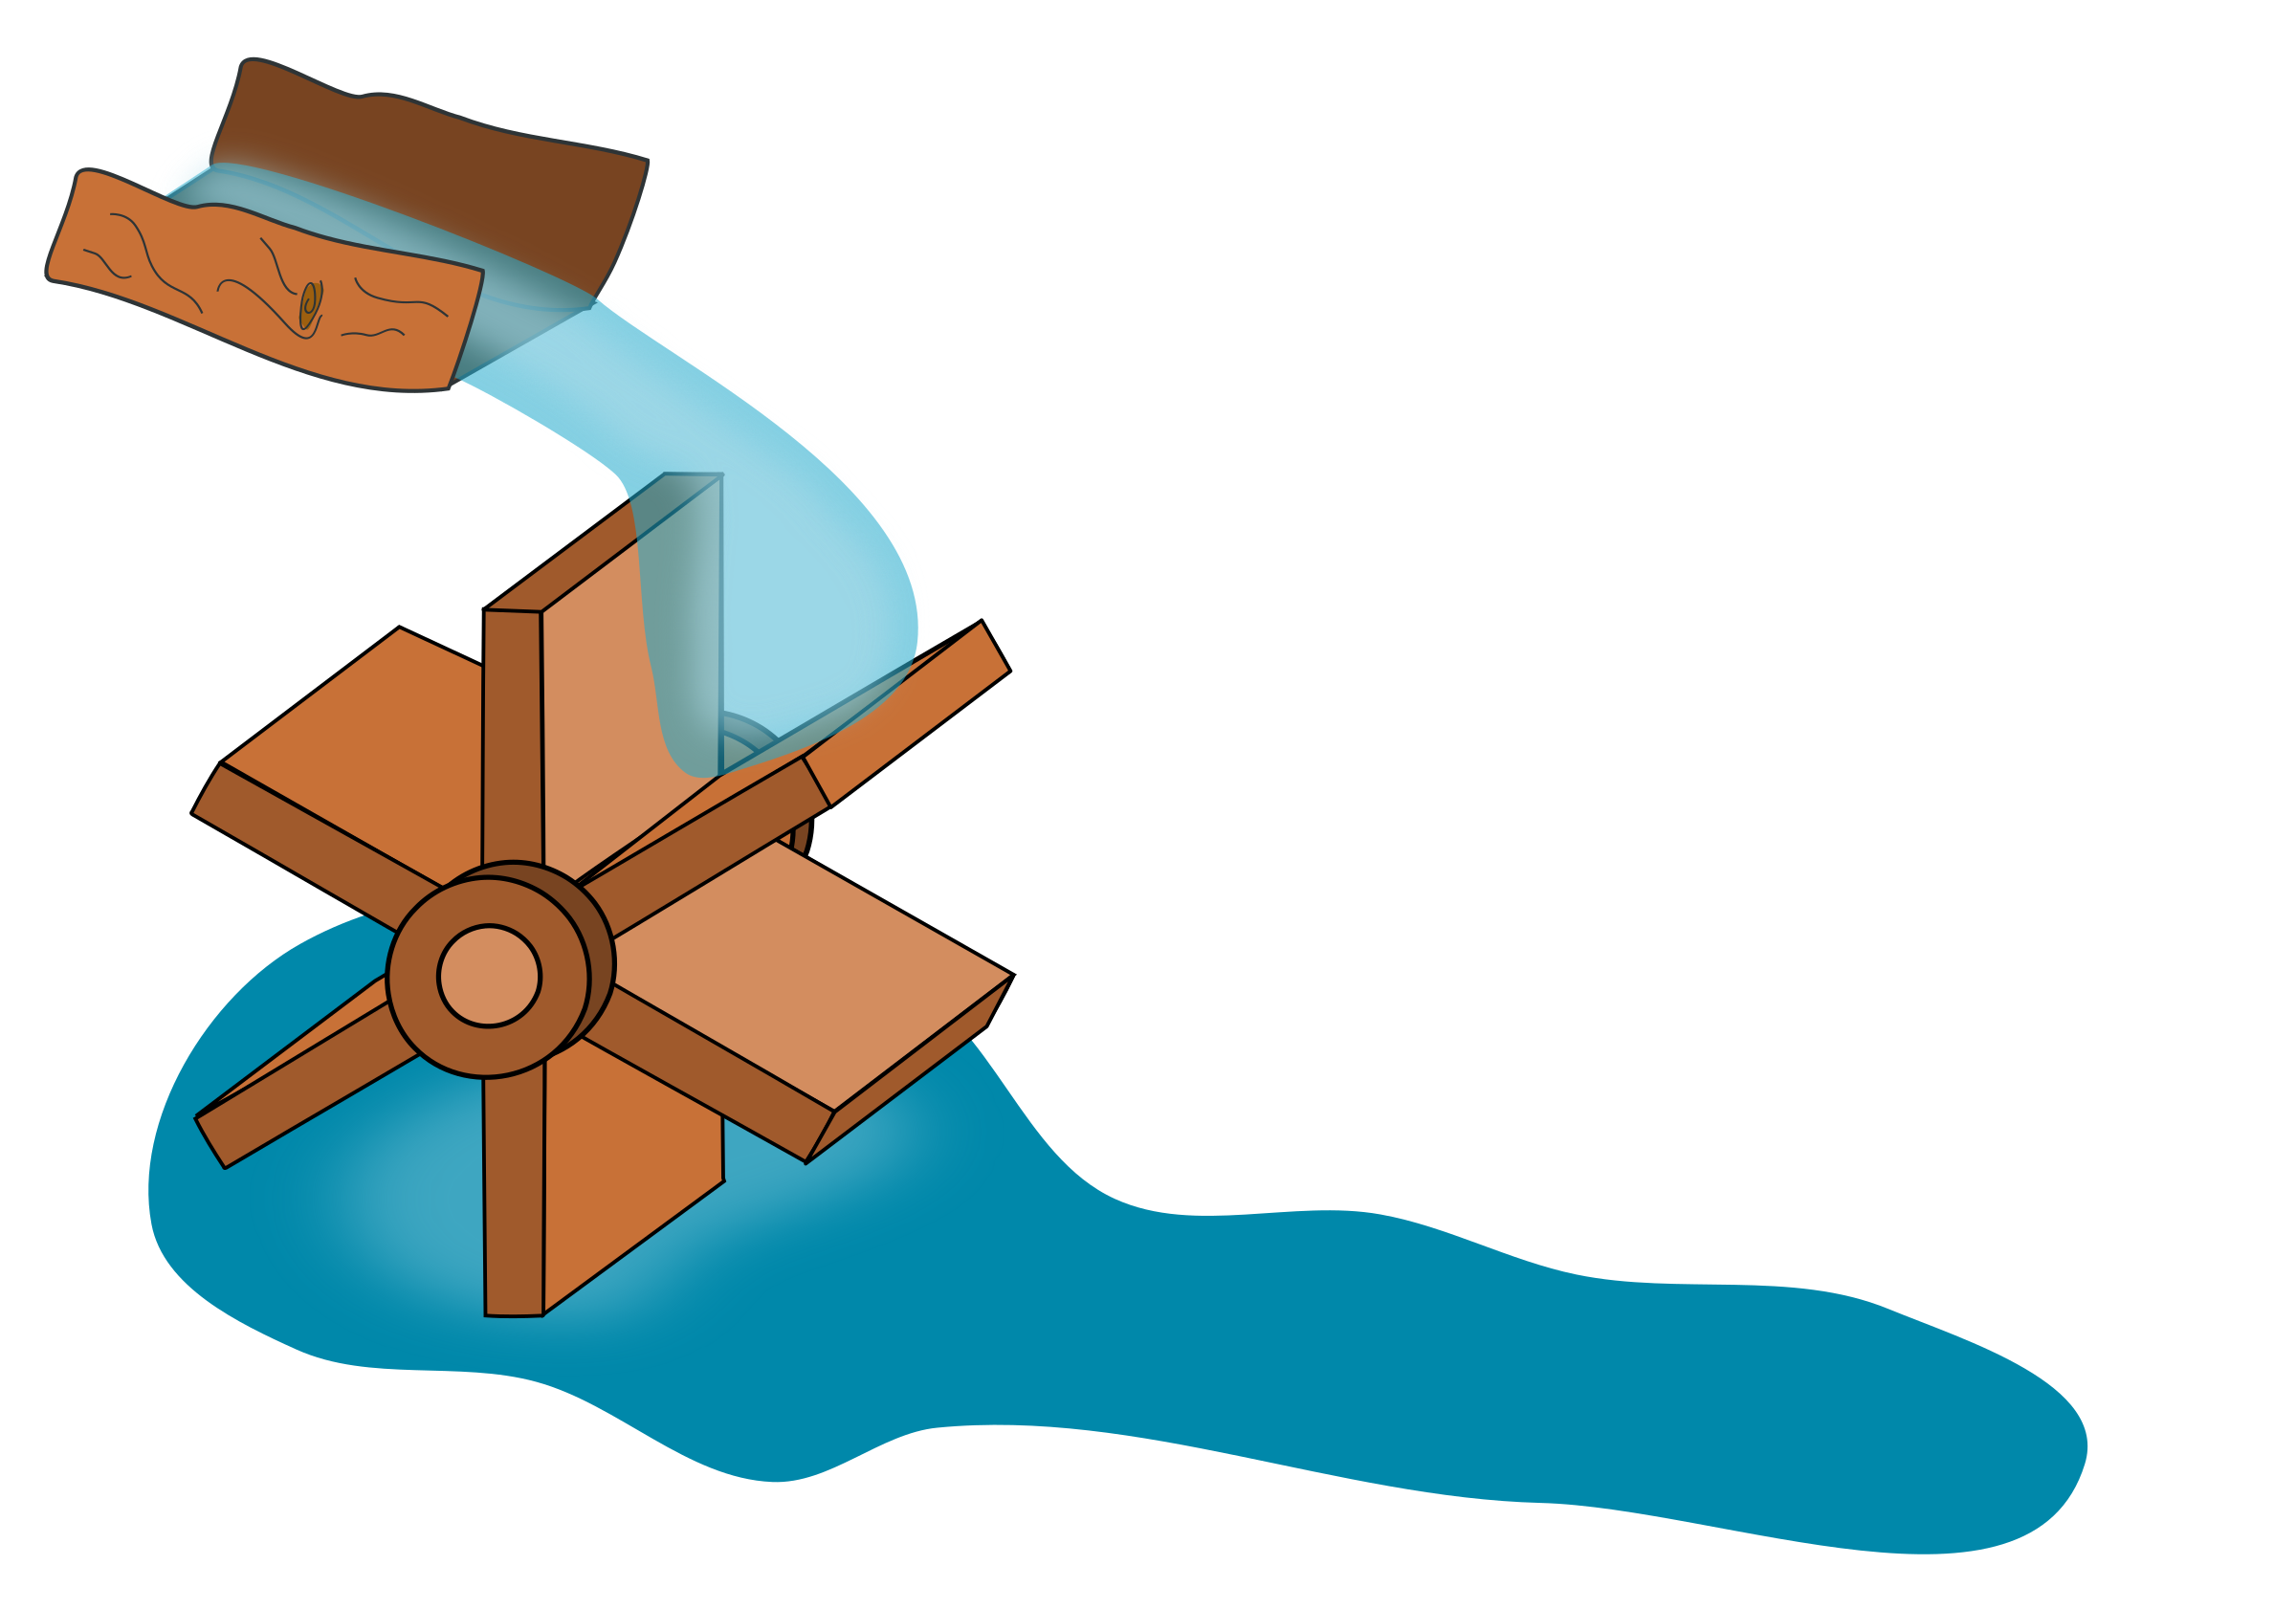 svg free library Water wheel clipart. Big image png.